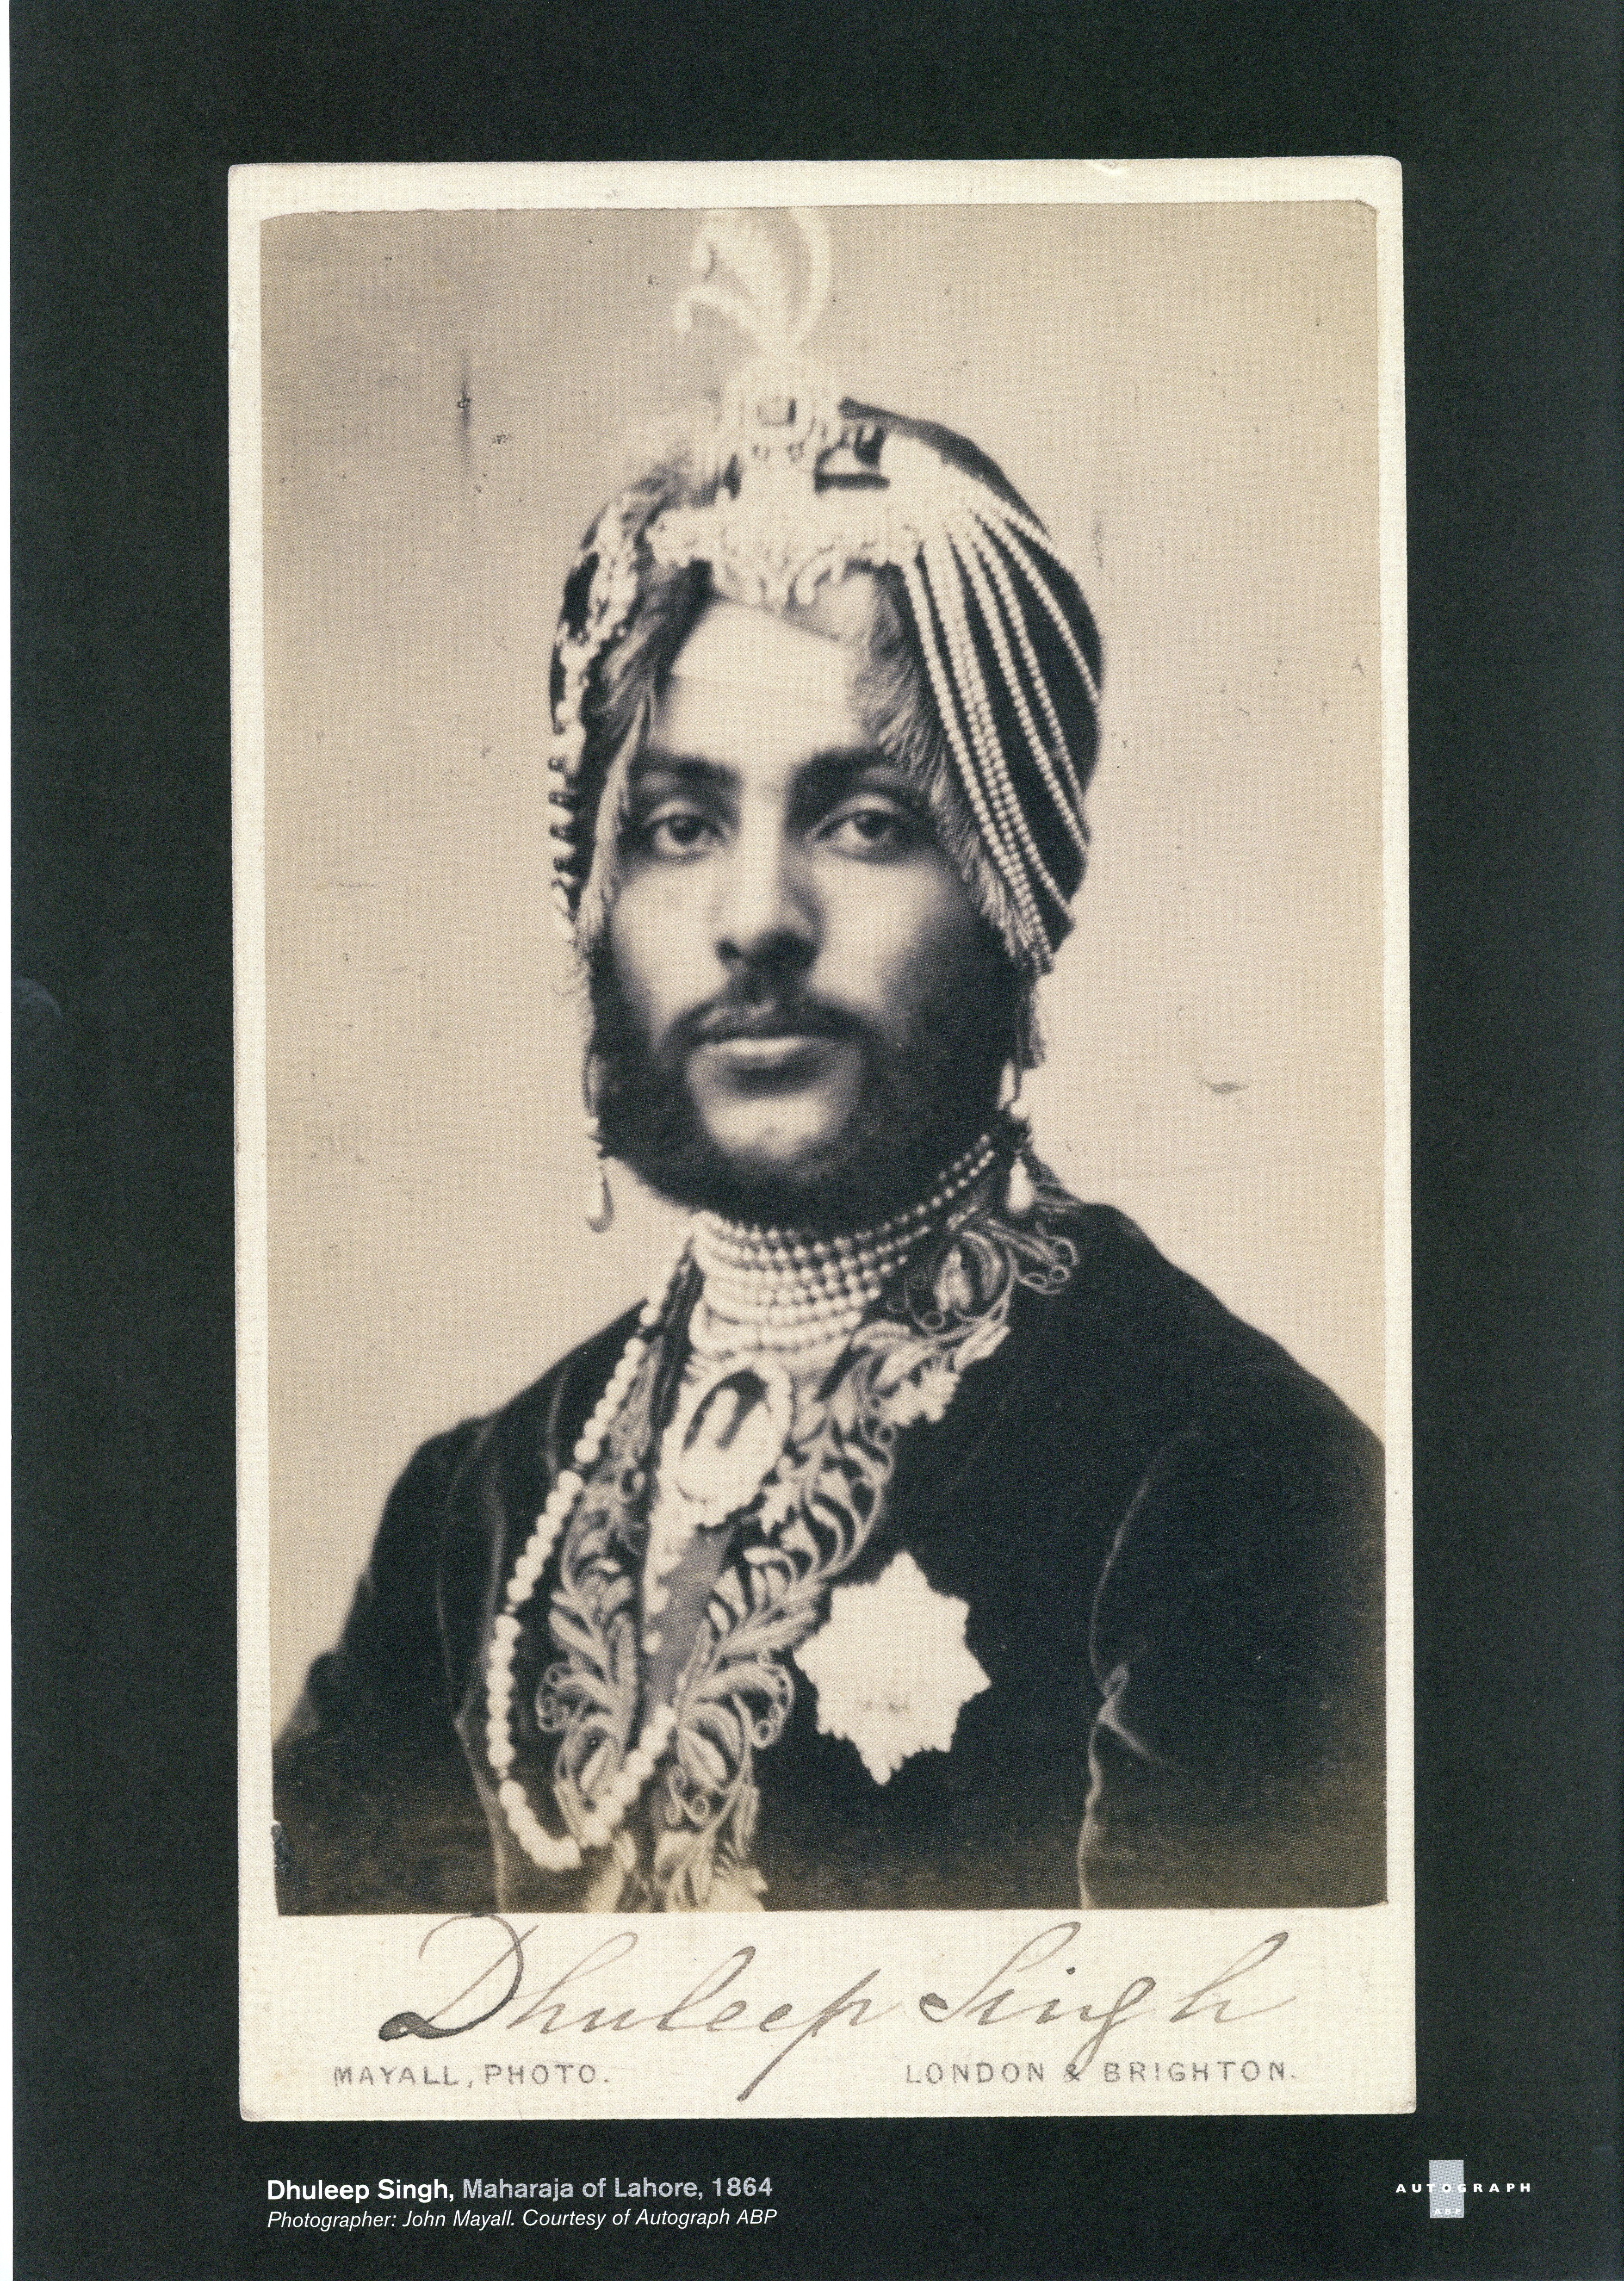 Black and white photograph of South Asian man with elaborate turban, moustache and short beard. Text reads Dhuleep Singh Maharajah of Lahore 164. Photographer Jon Mayall Courtesy of Autograph ABP